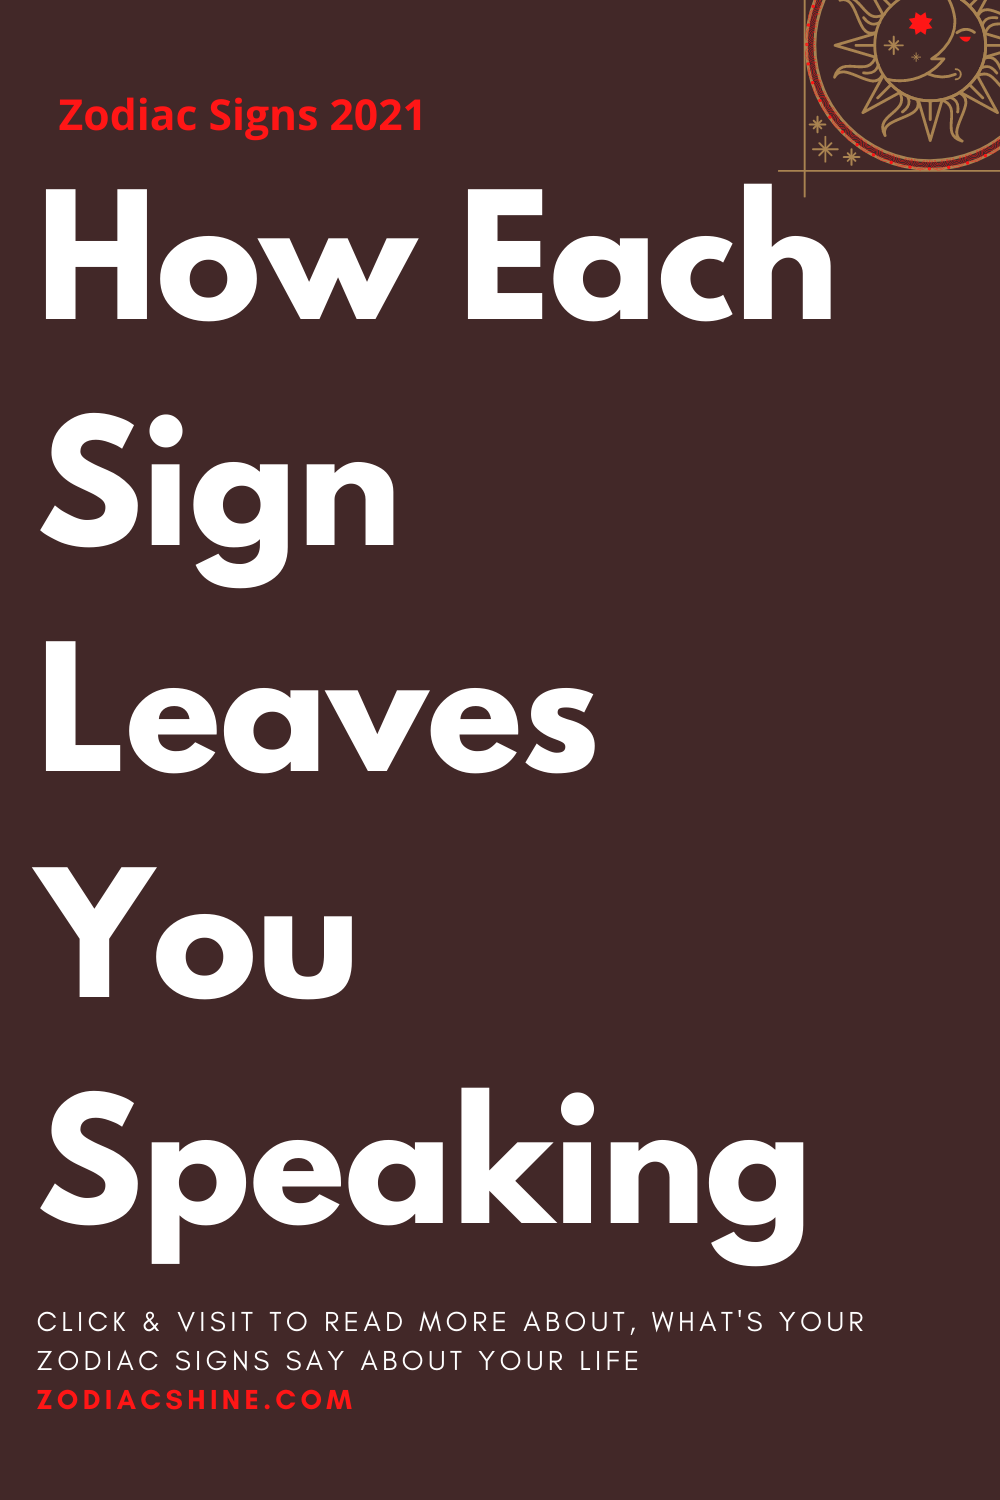 How Each Sign Leaves You Speaking